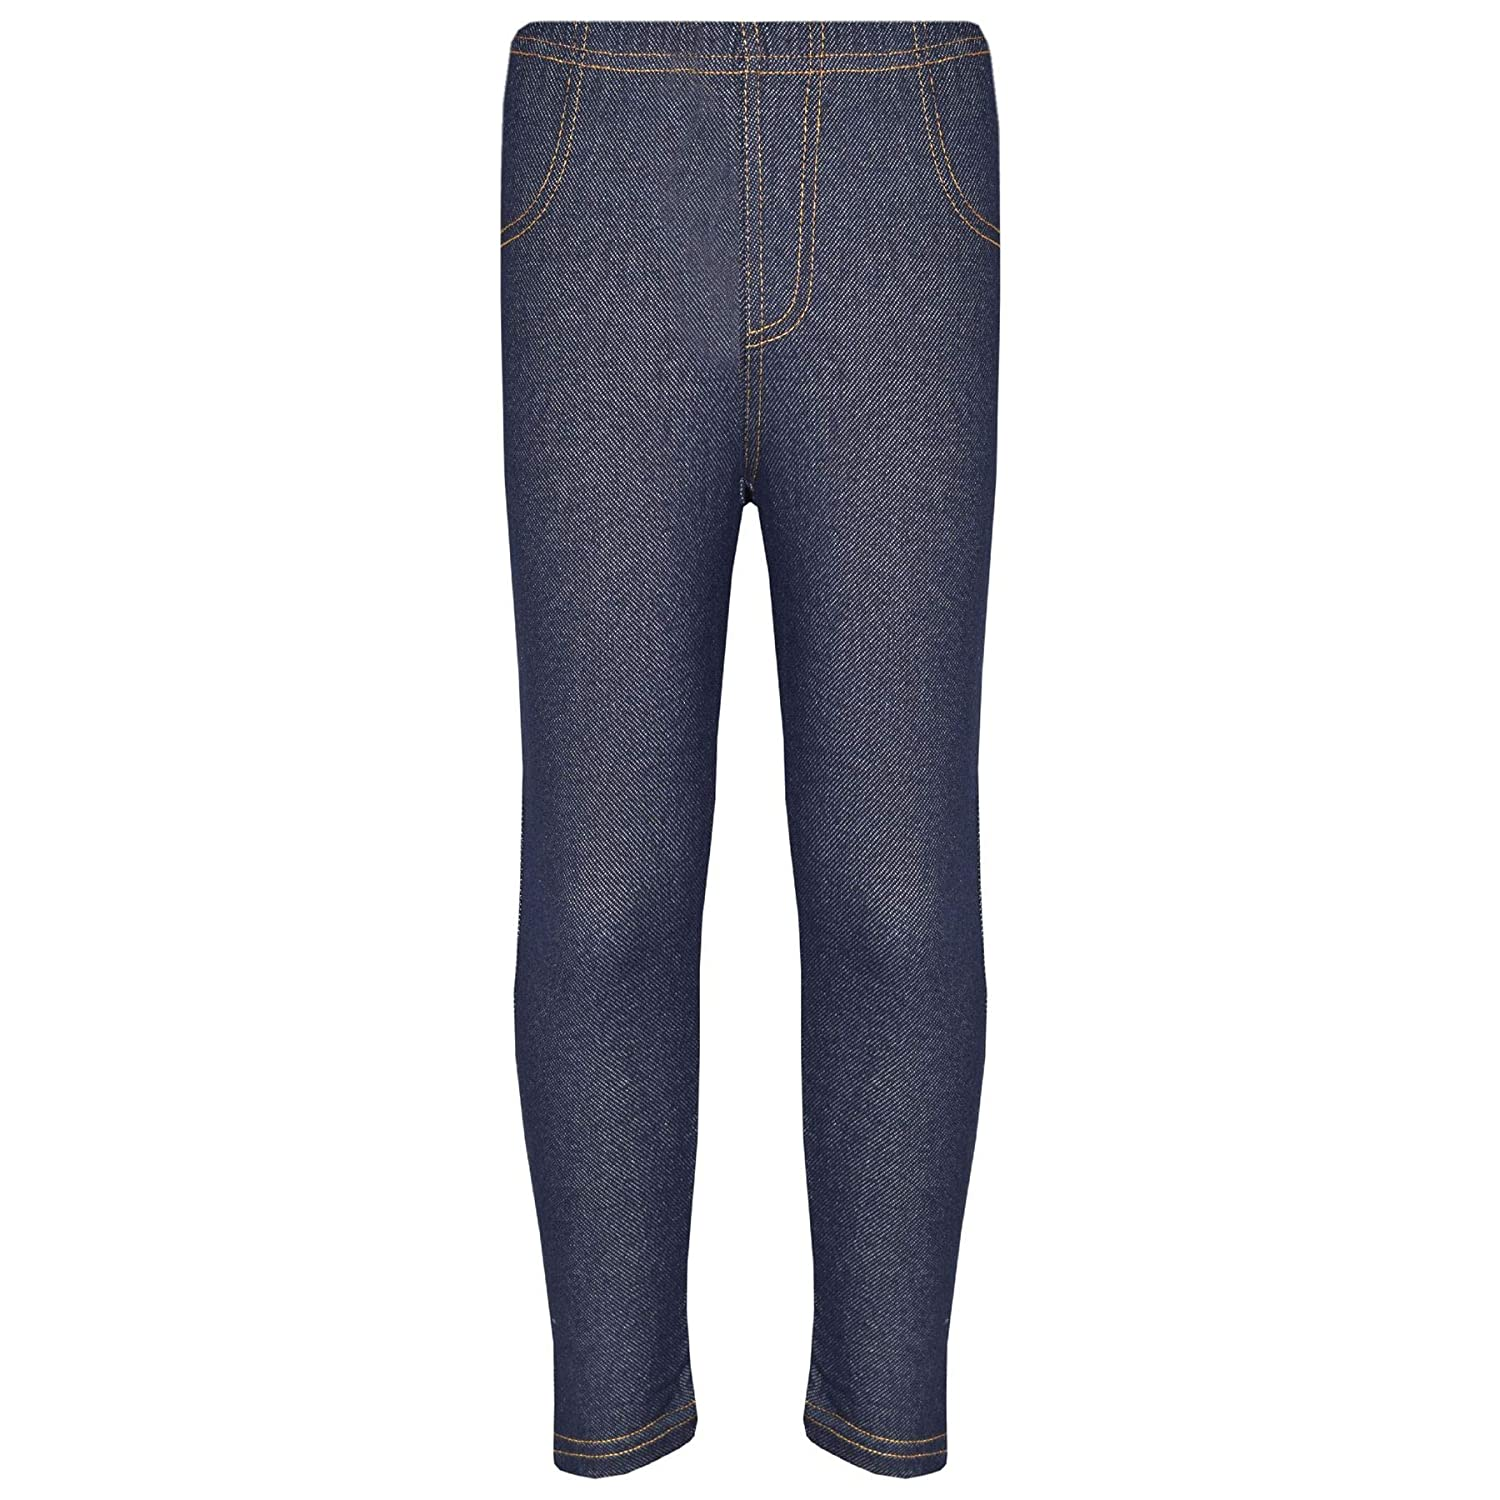 A2Z 4 Kids® Kids Girls Stretchy Jeggings Designer's Blue Denim Stylish Jeans Pants Fashion Trousers Leggings New Age 5 6 7 8 9 10 11 12 13 Years